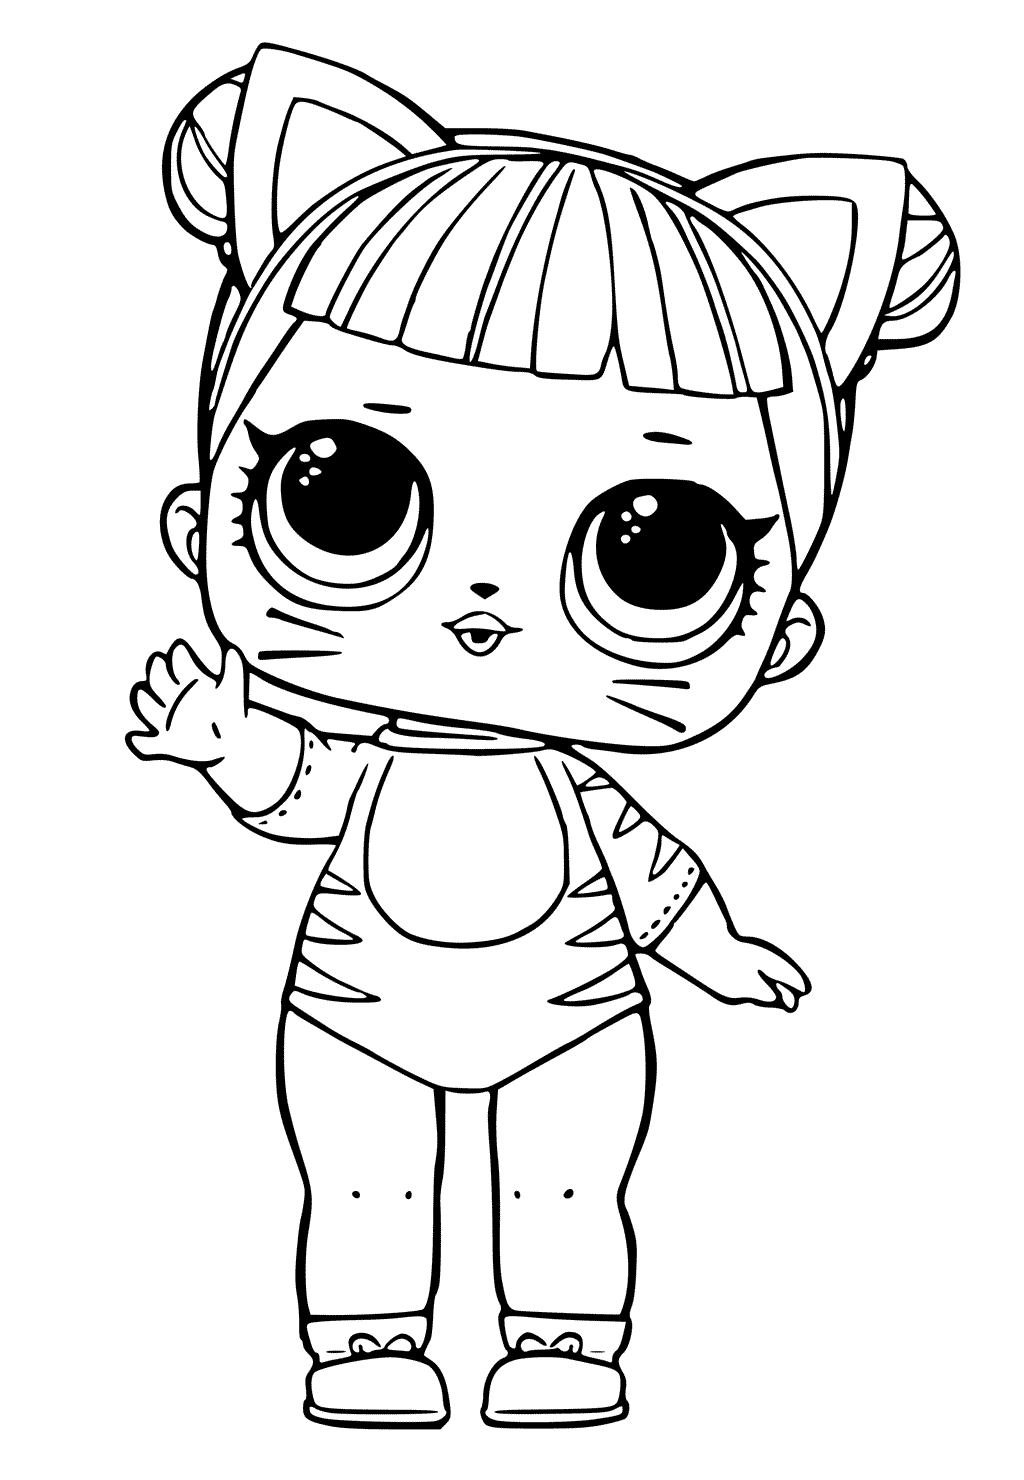 lol dolls coloring pages printables - Colouring Pages Printables